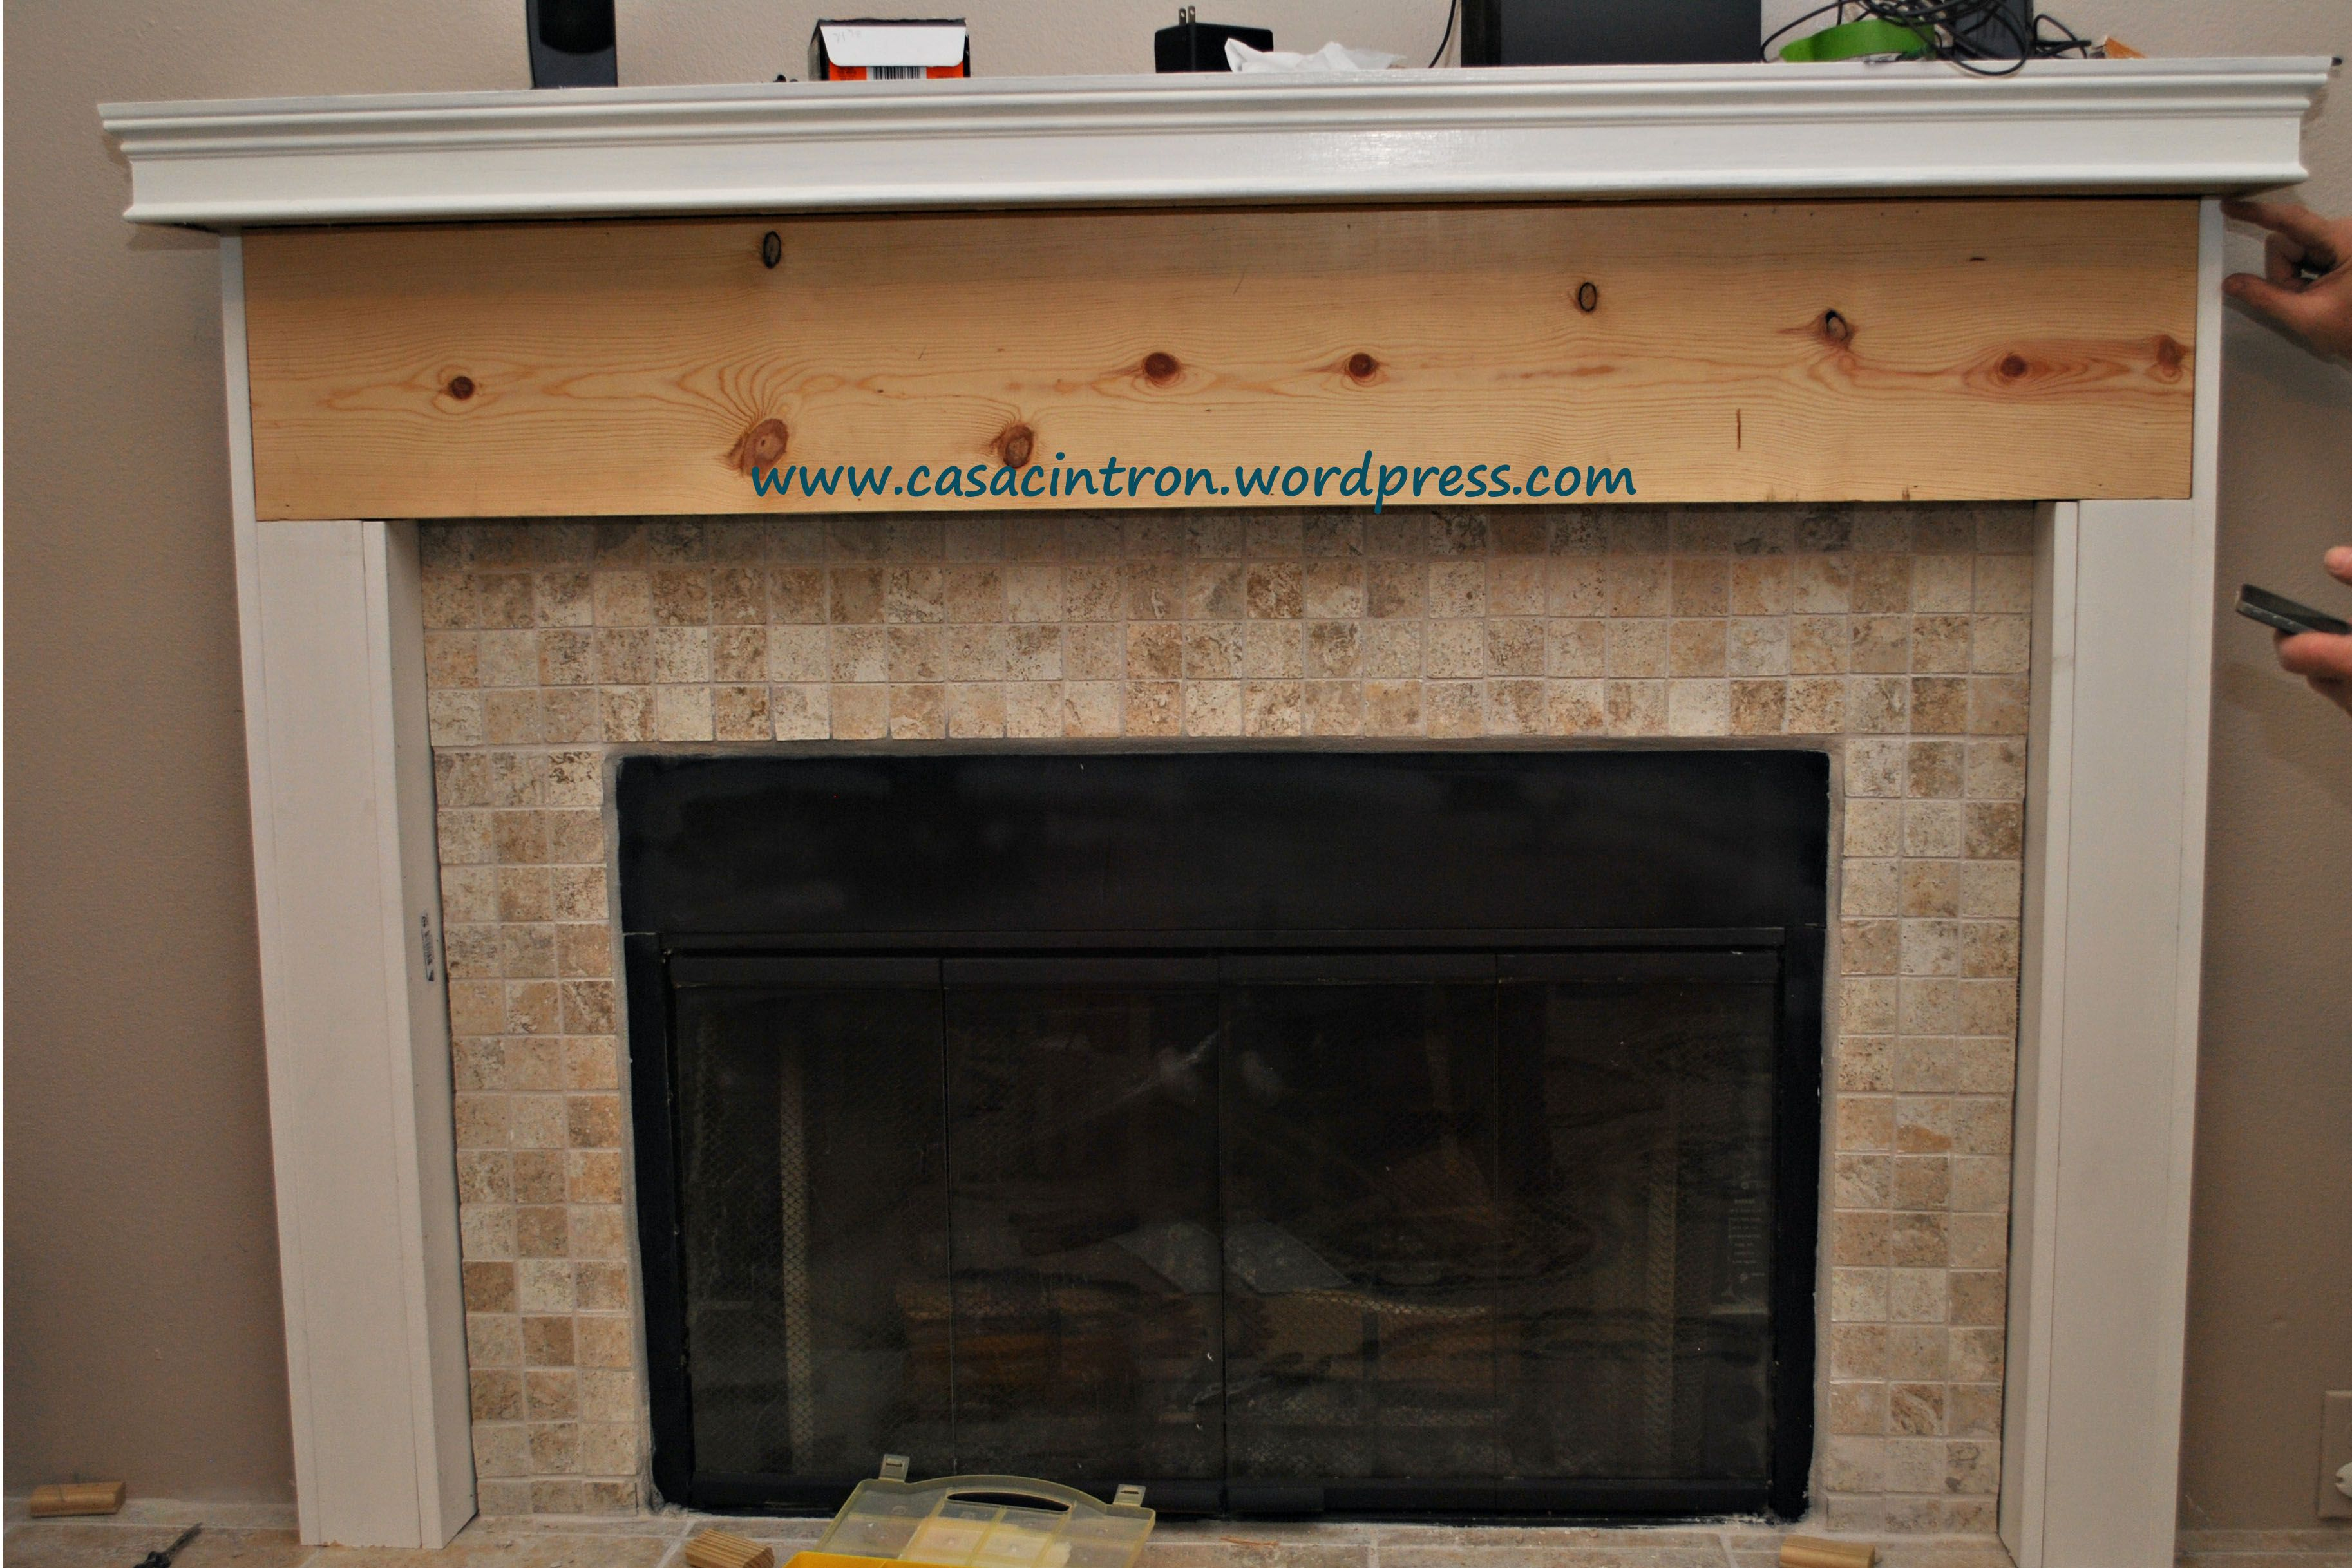 How to build a fireplace mantlesurround phase 2 fireplace reveal how to build a fireplace mantlesurround phase 2 fireplace reveal solutioingenieria Images